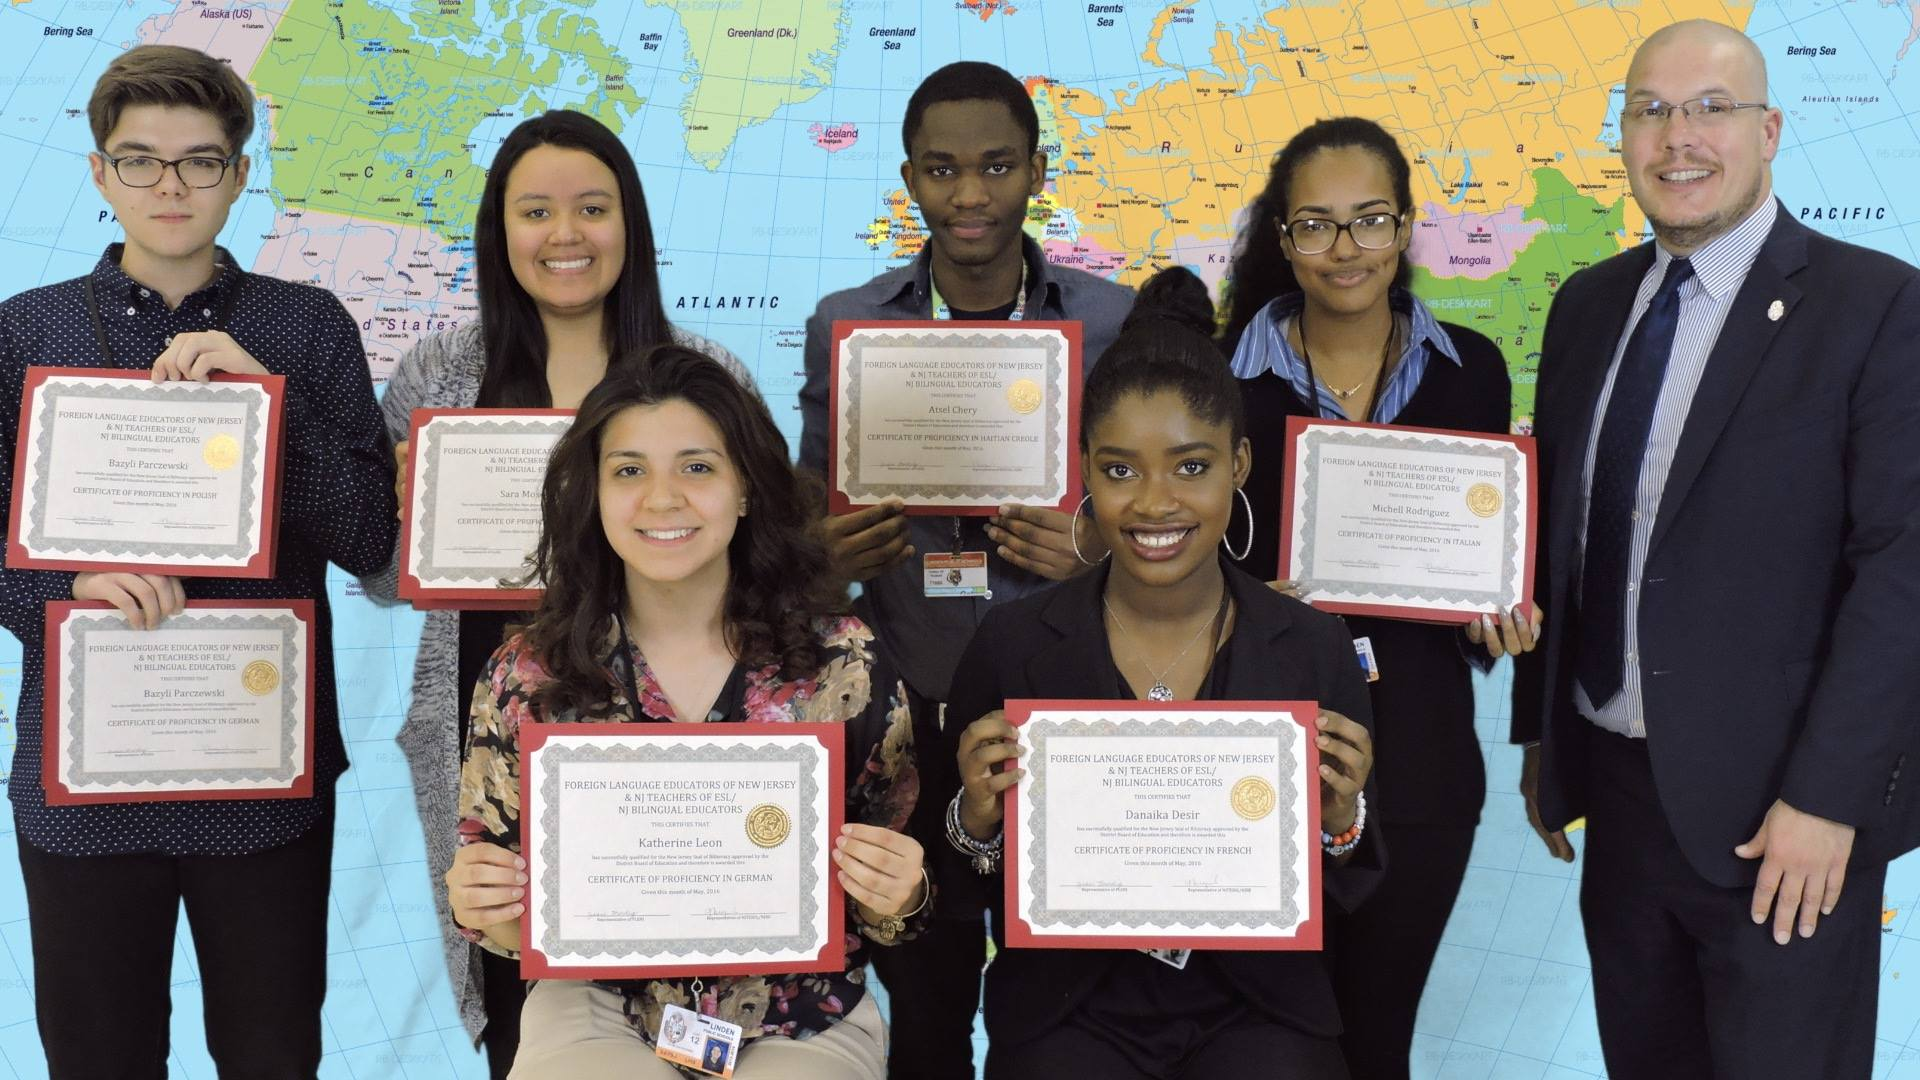 Linden Schools Superintendent Recognized as 30 LHS Students Earn the Seal of Biliteracy